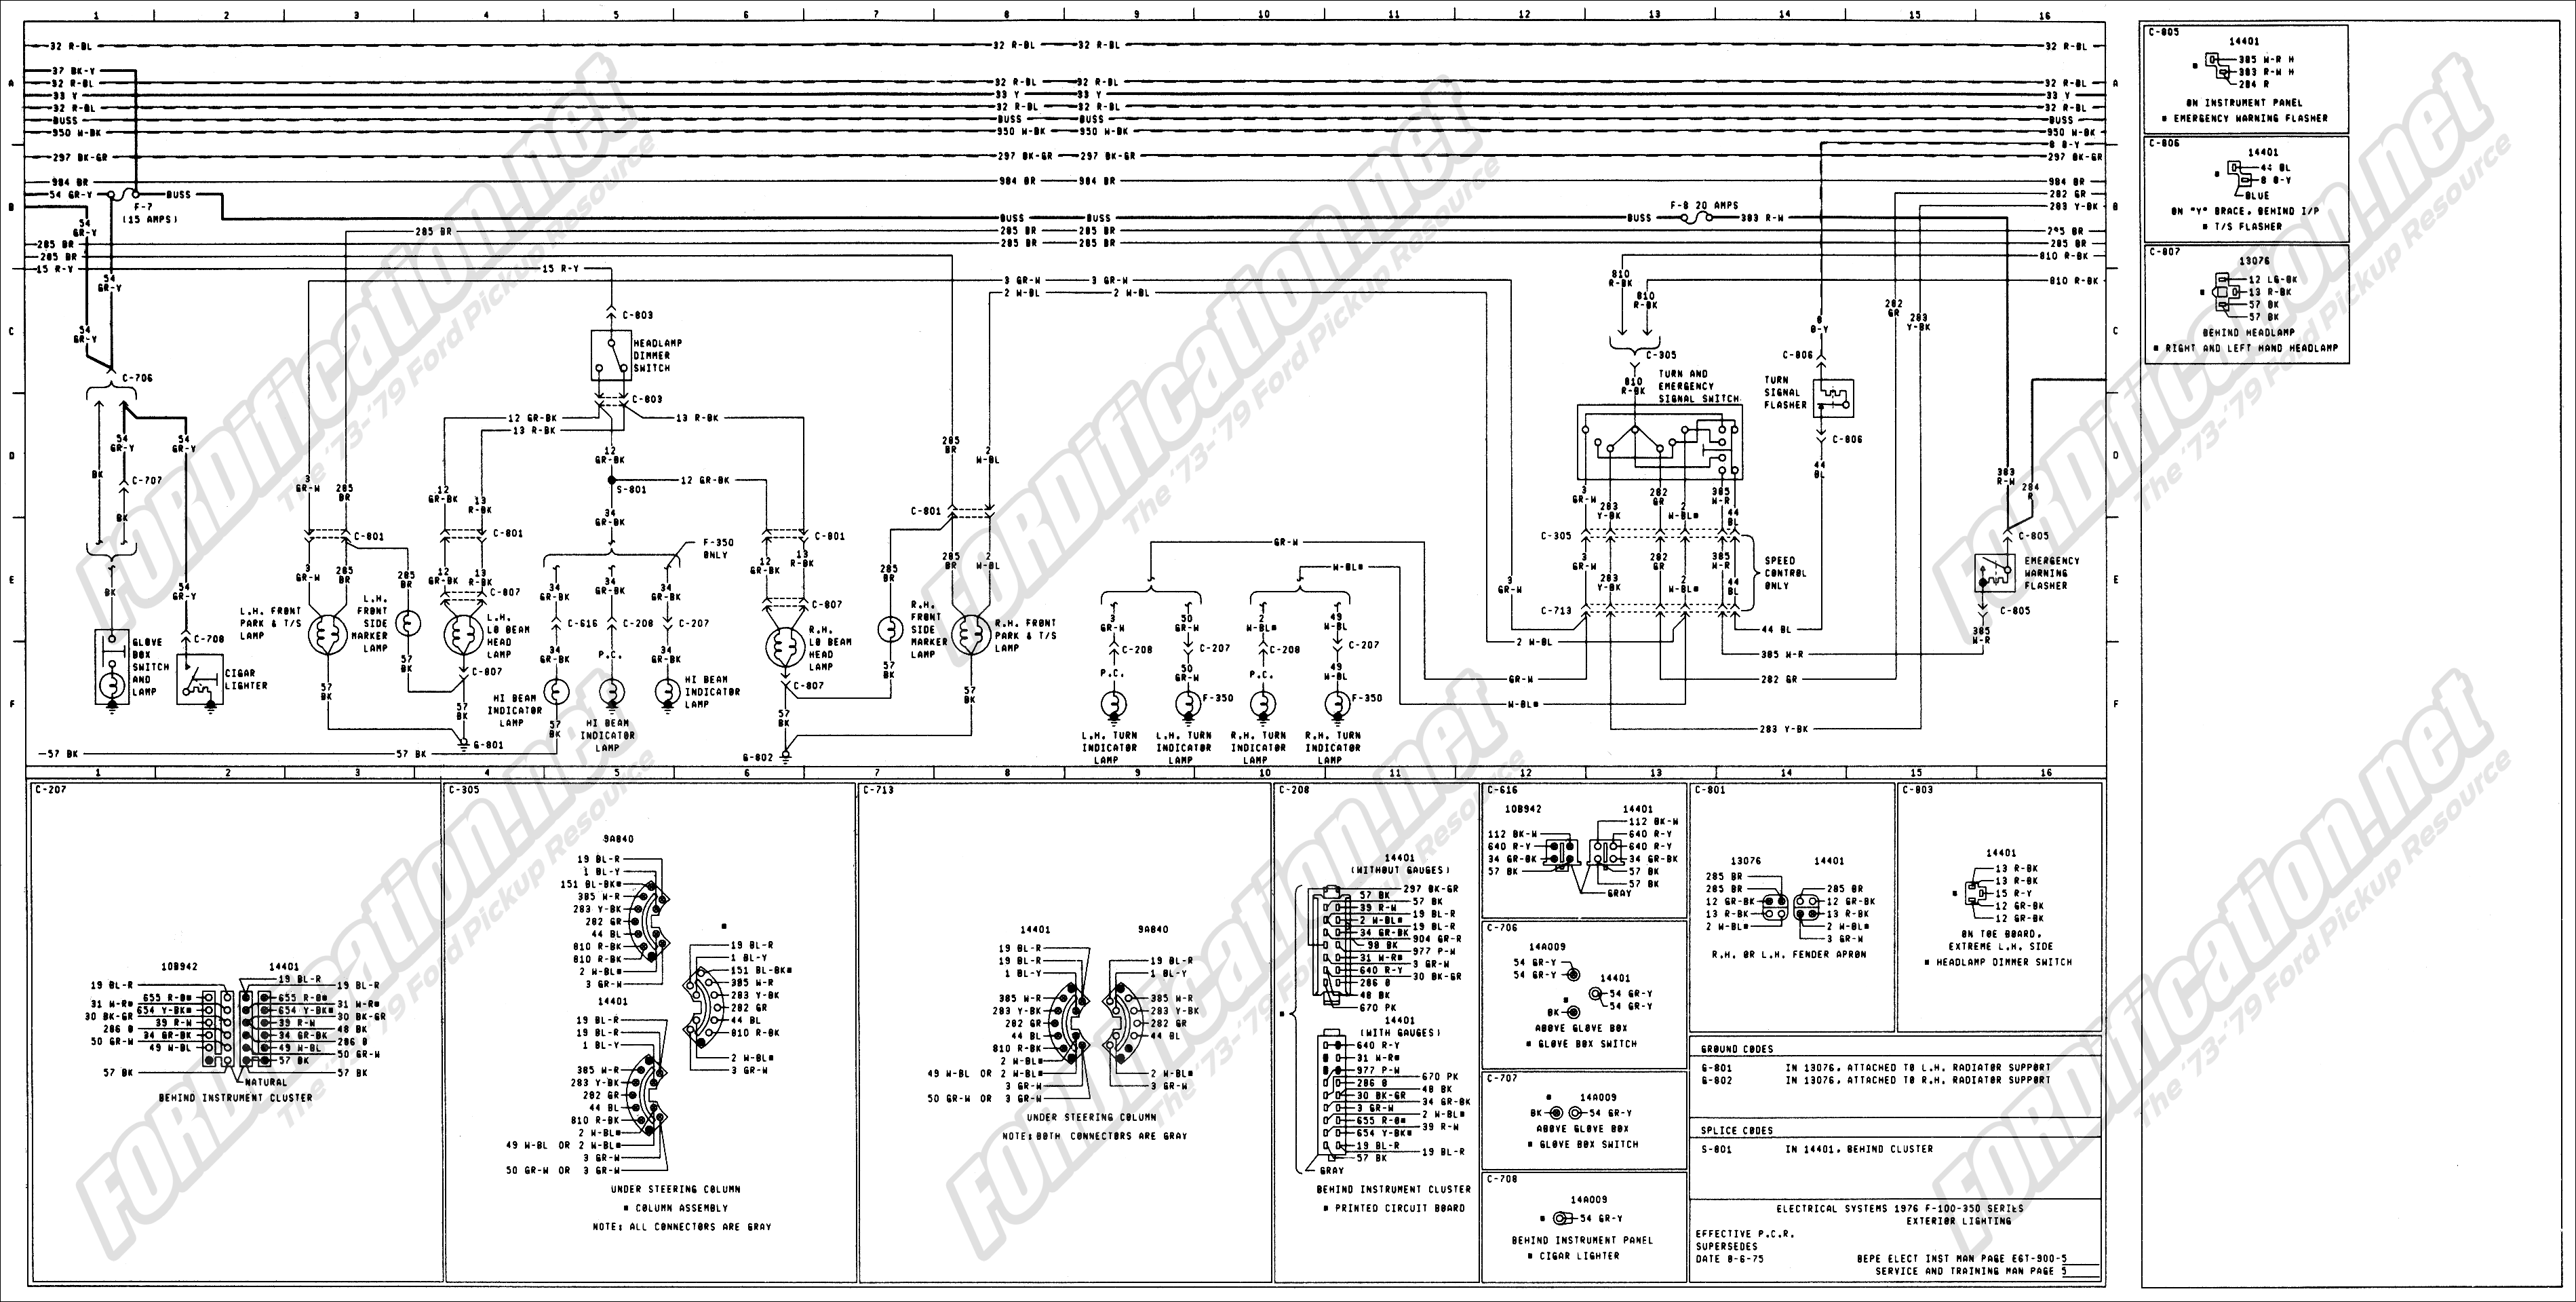 1976 F250 Ac Wiring Diagram Circuit Schematic 89 Ford F 150 Window Motor For Electronic Diagrams Source 99 F150